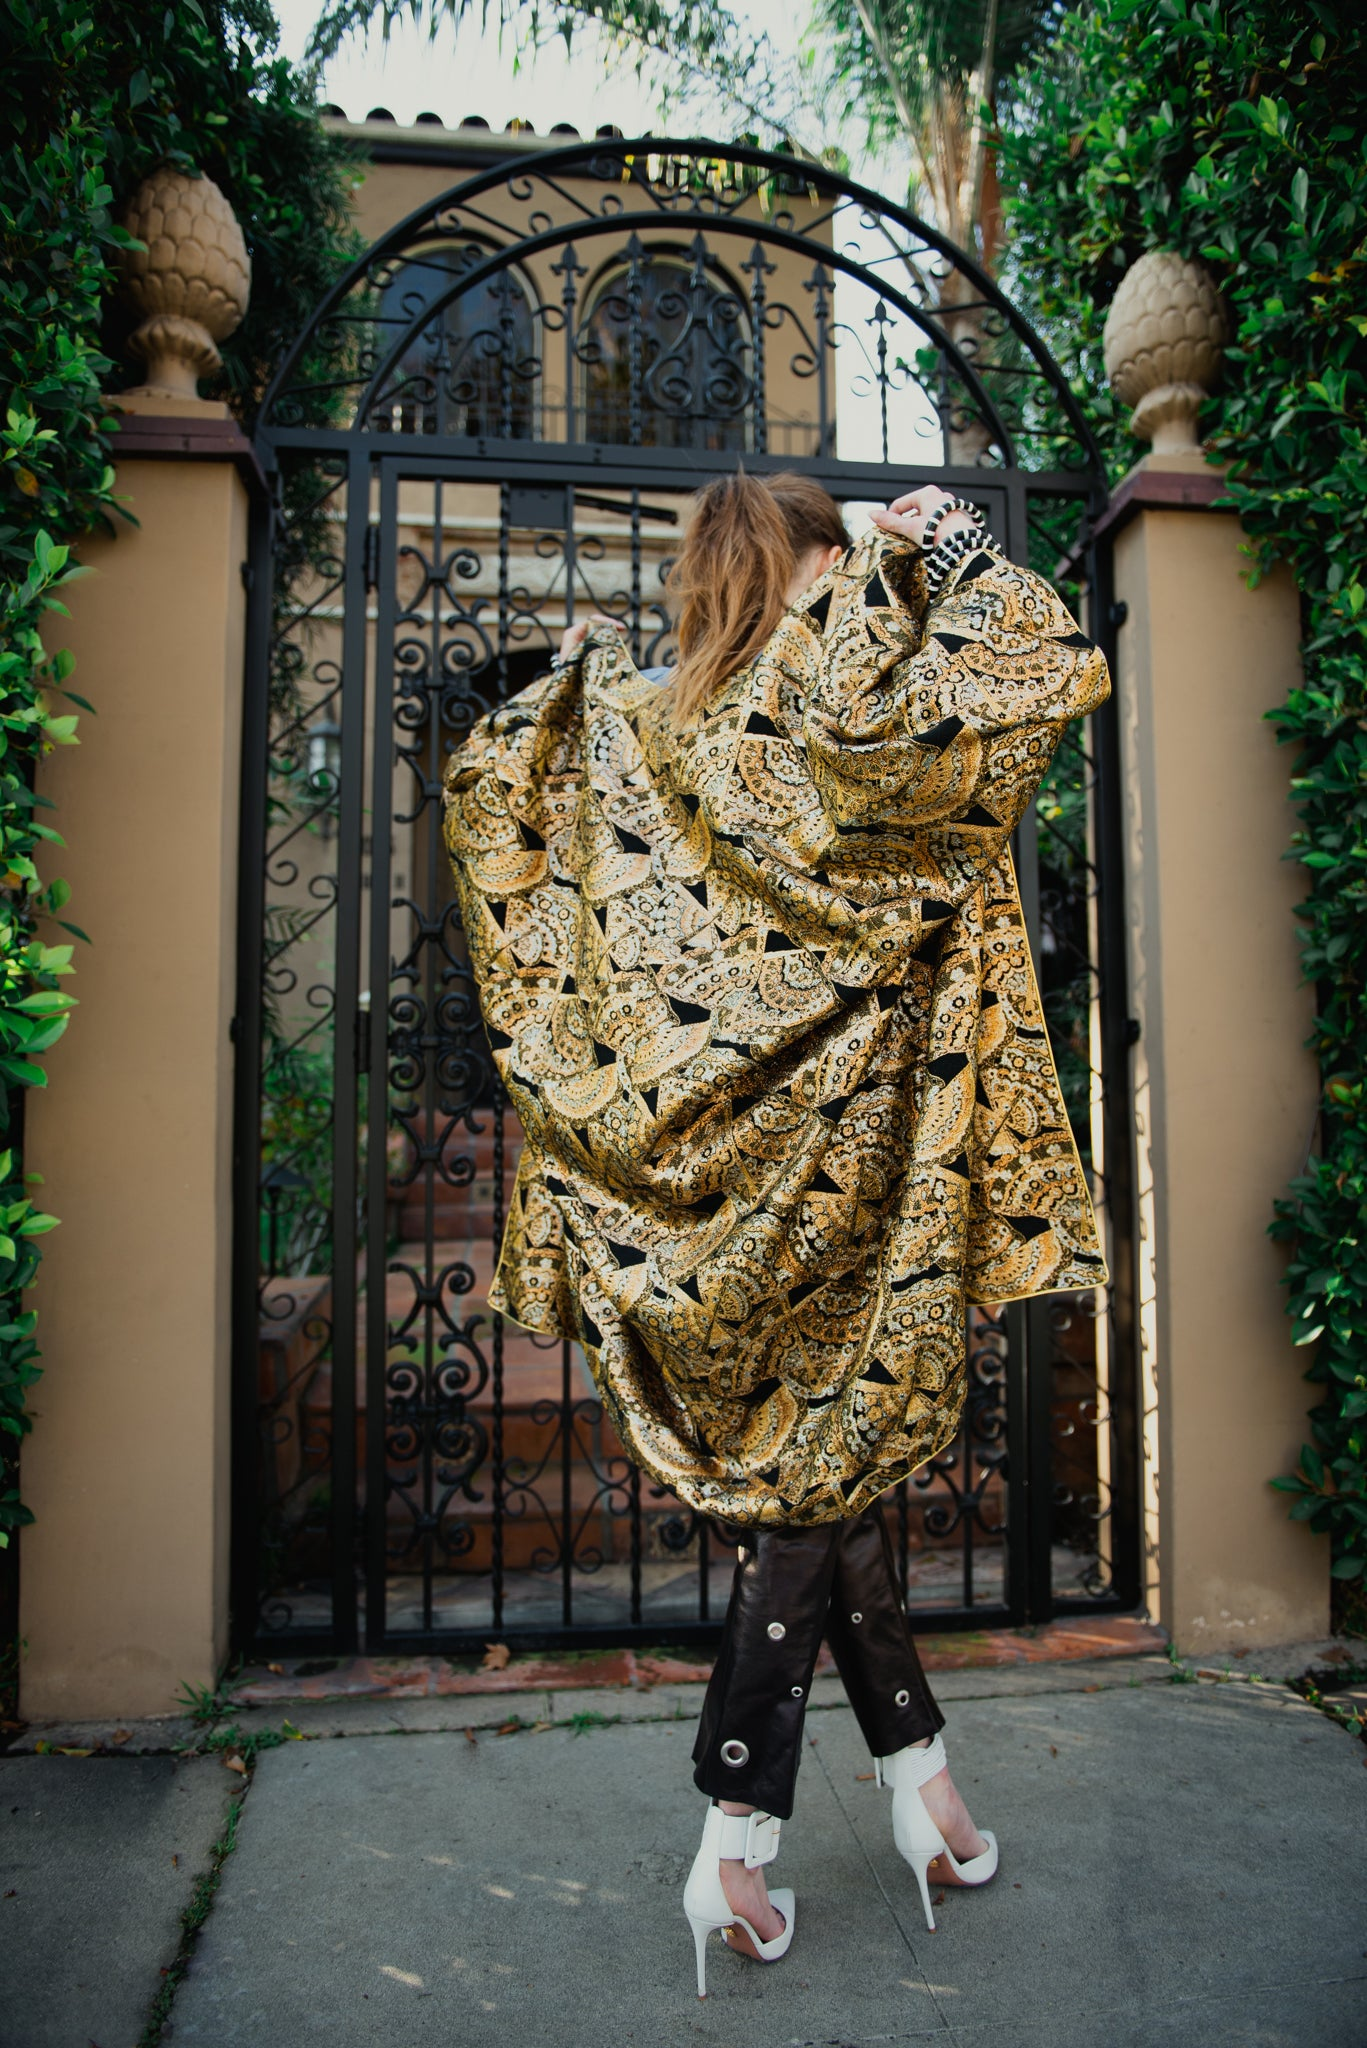 Girl in gold brocade Anthony Muto Cocoon coat leather pants & white heel front of gate